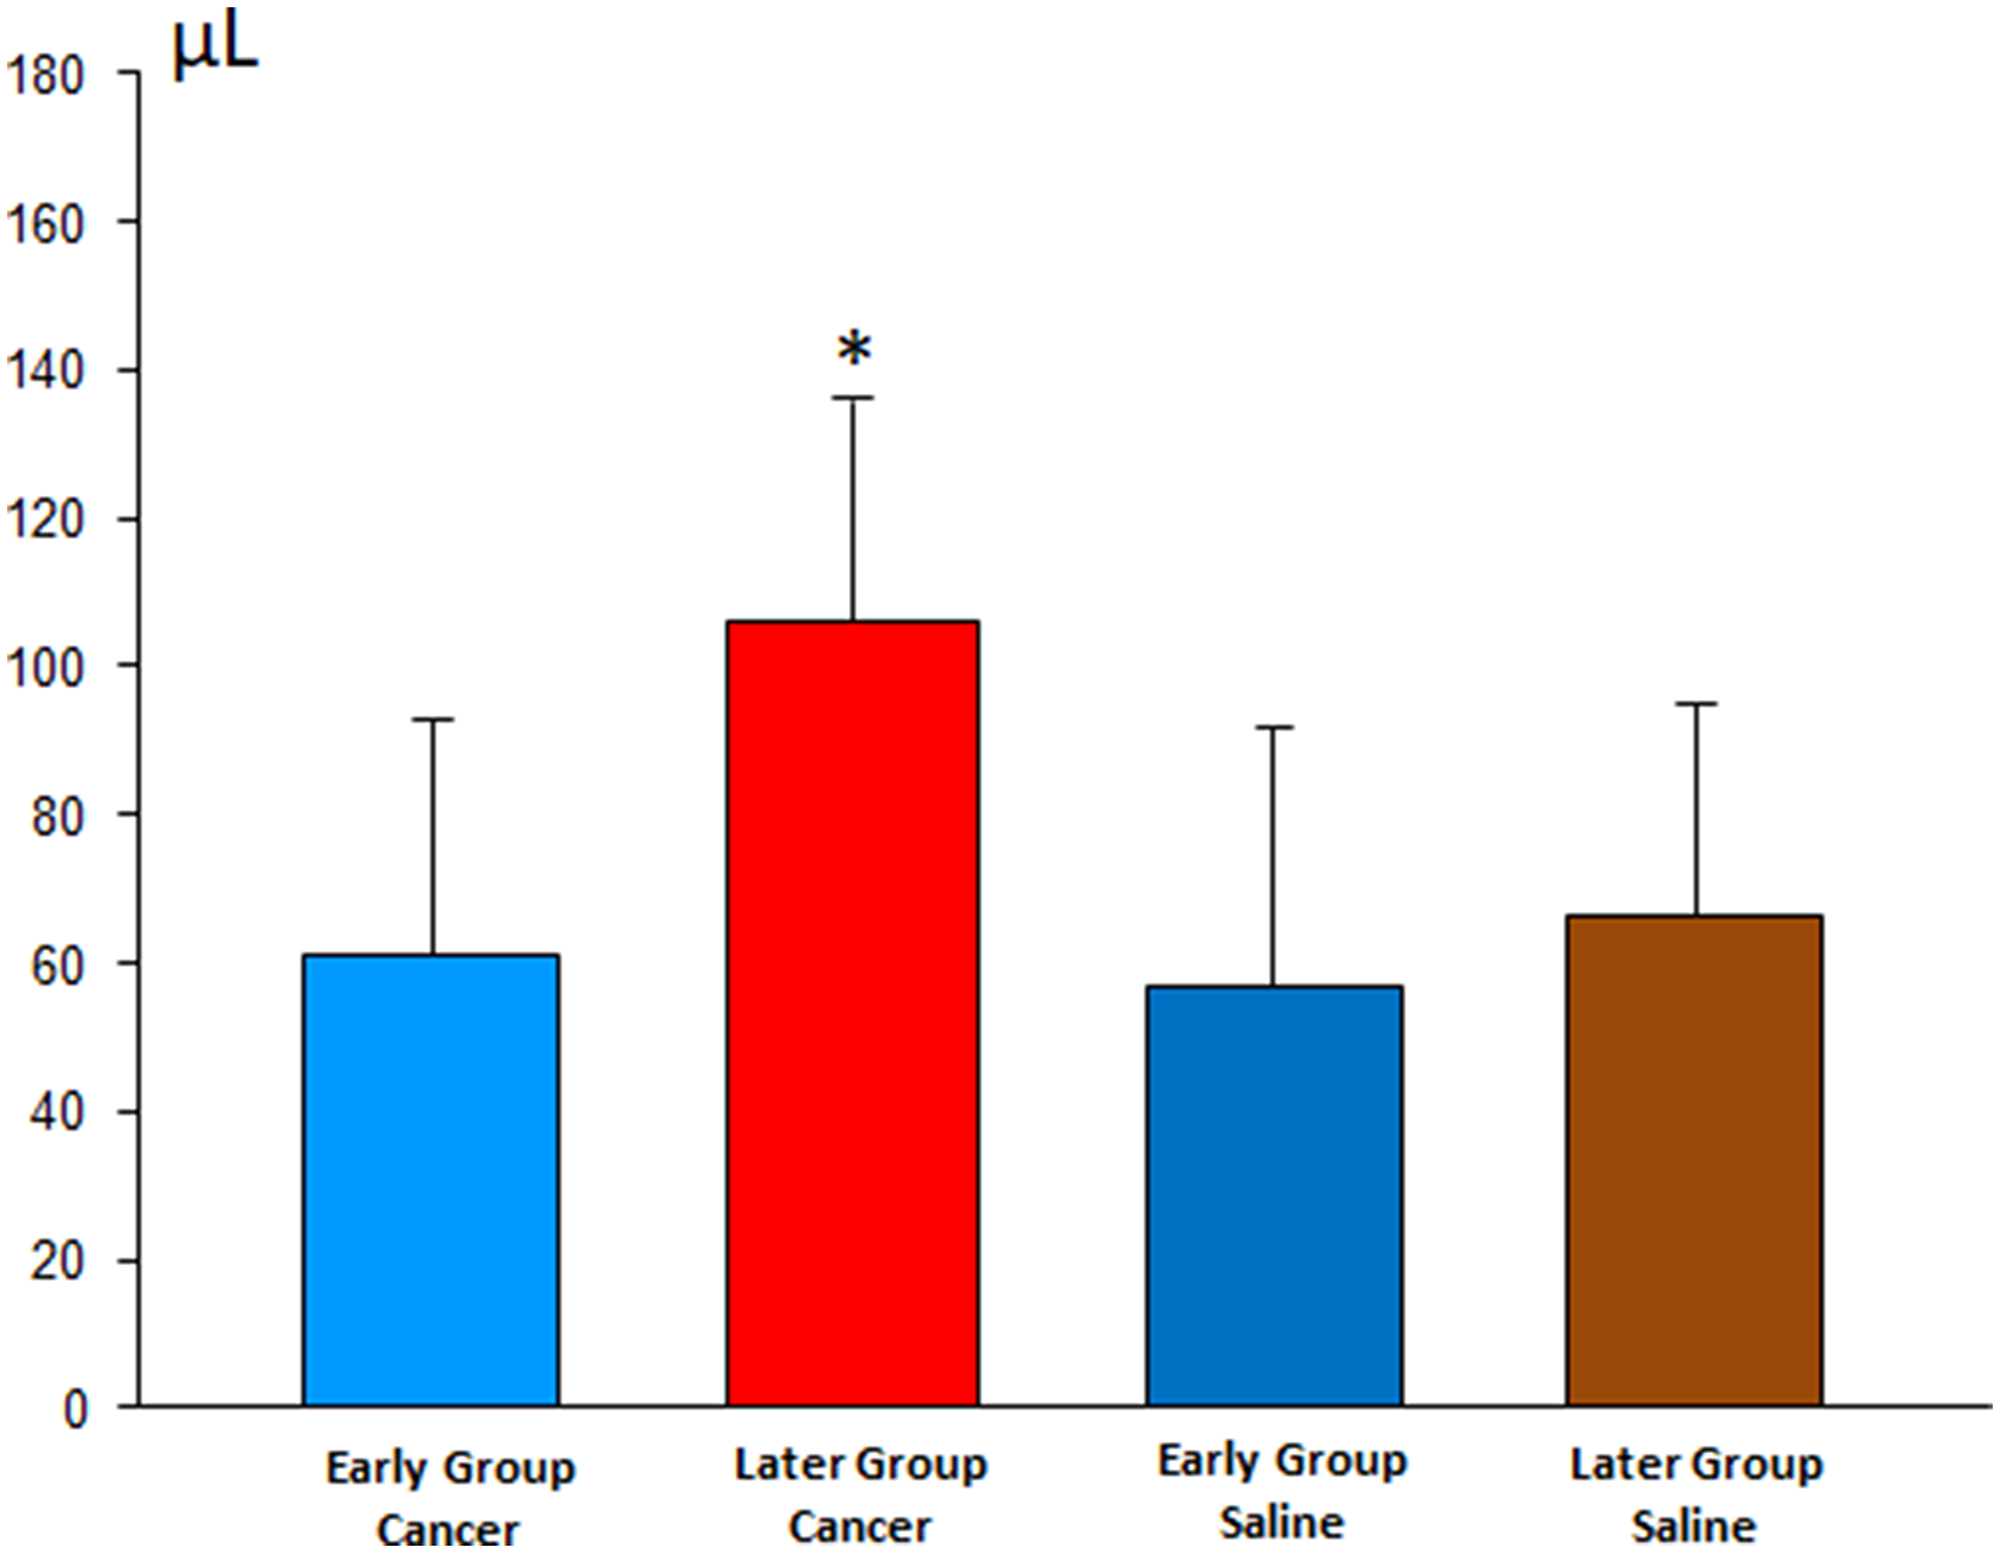 Volume of pleural effusion in the early and late stages of pleurodesis between the cancer and saline groups.